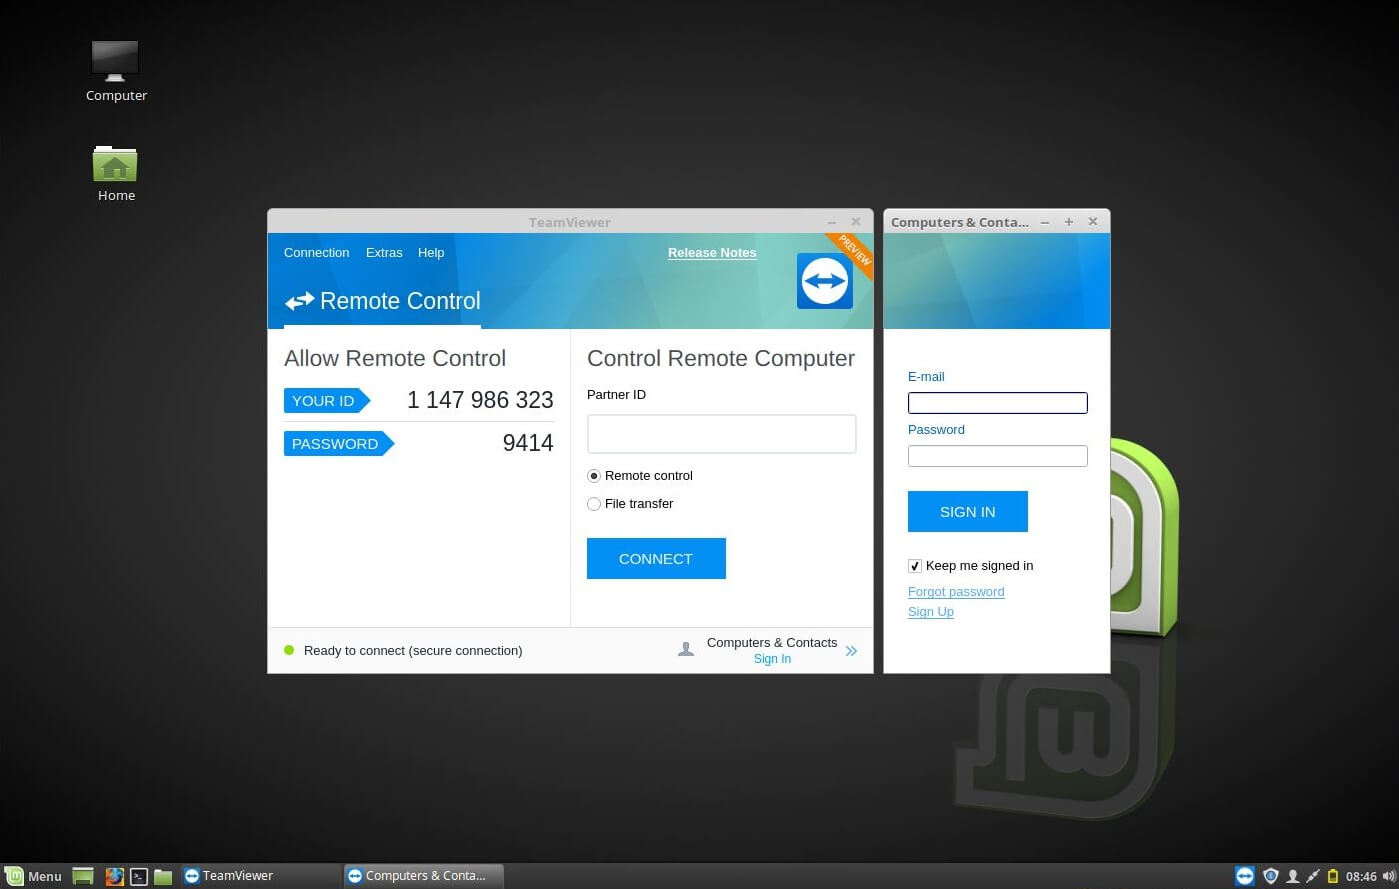 How to Install TeamViewer on Linux Mint 19 / Linux Mint 18